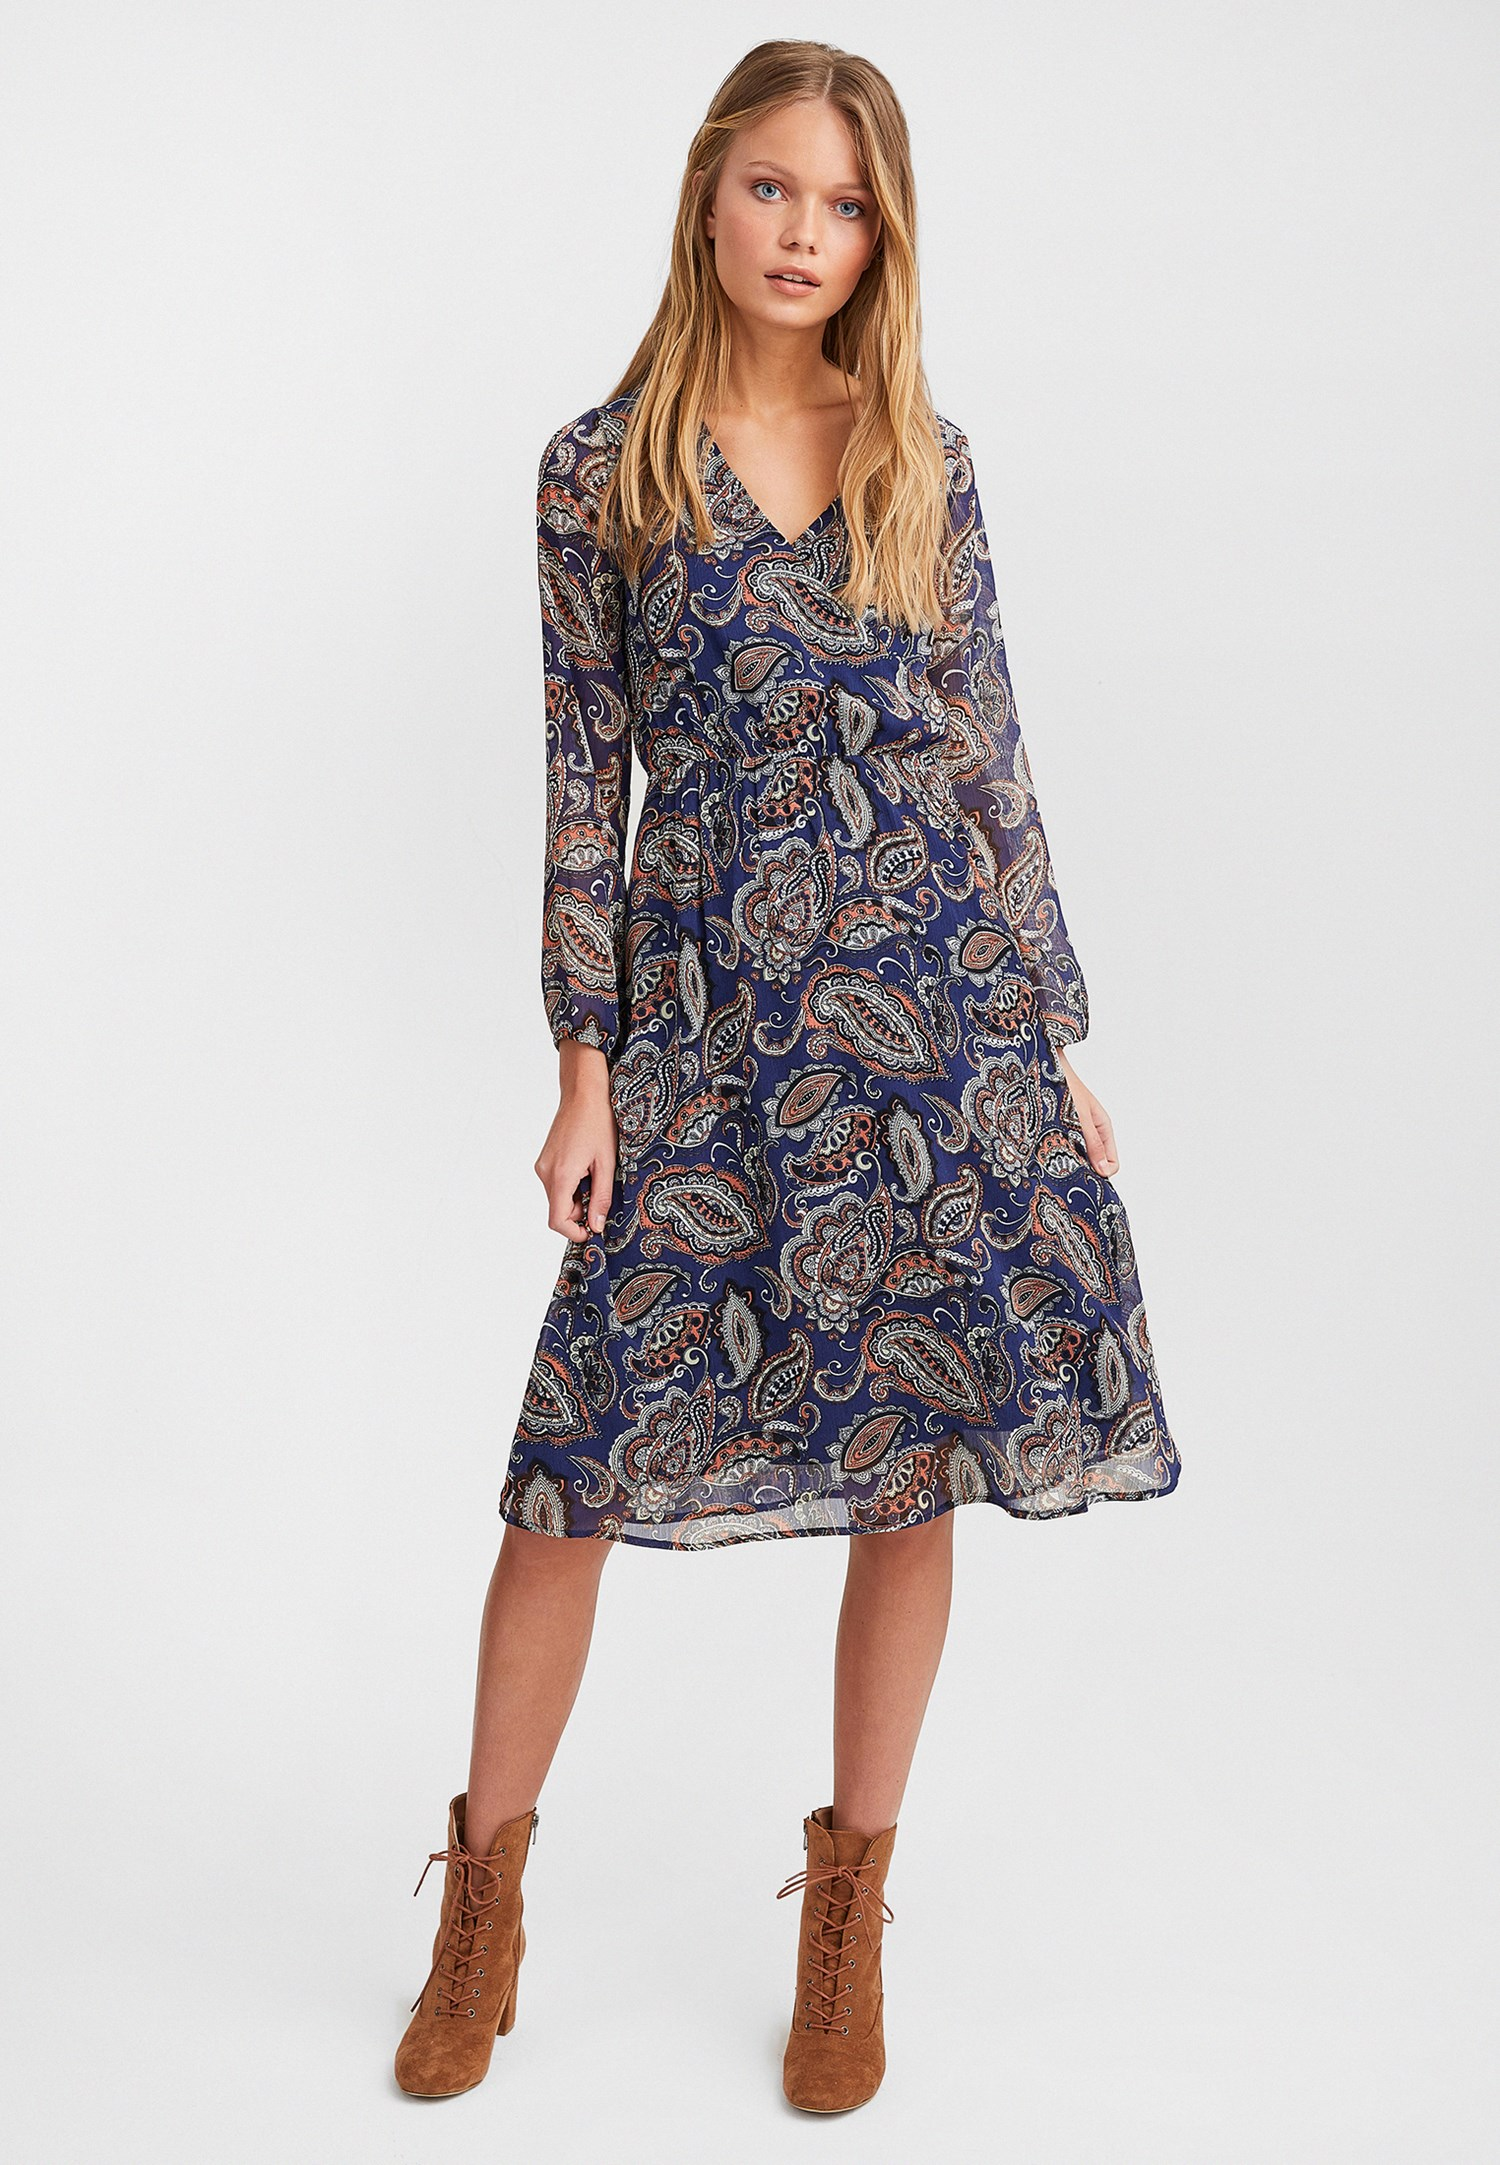 03a5a8a2fa88 Mixed Patterned Long Sleeve Midi Dress Online Shopping